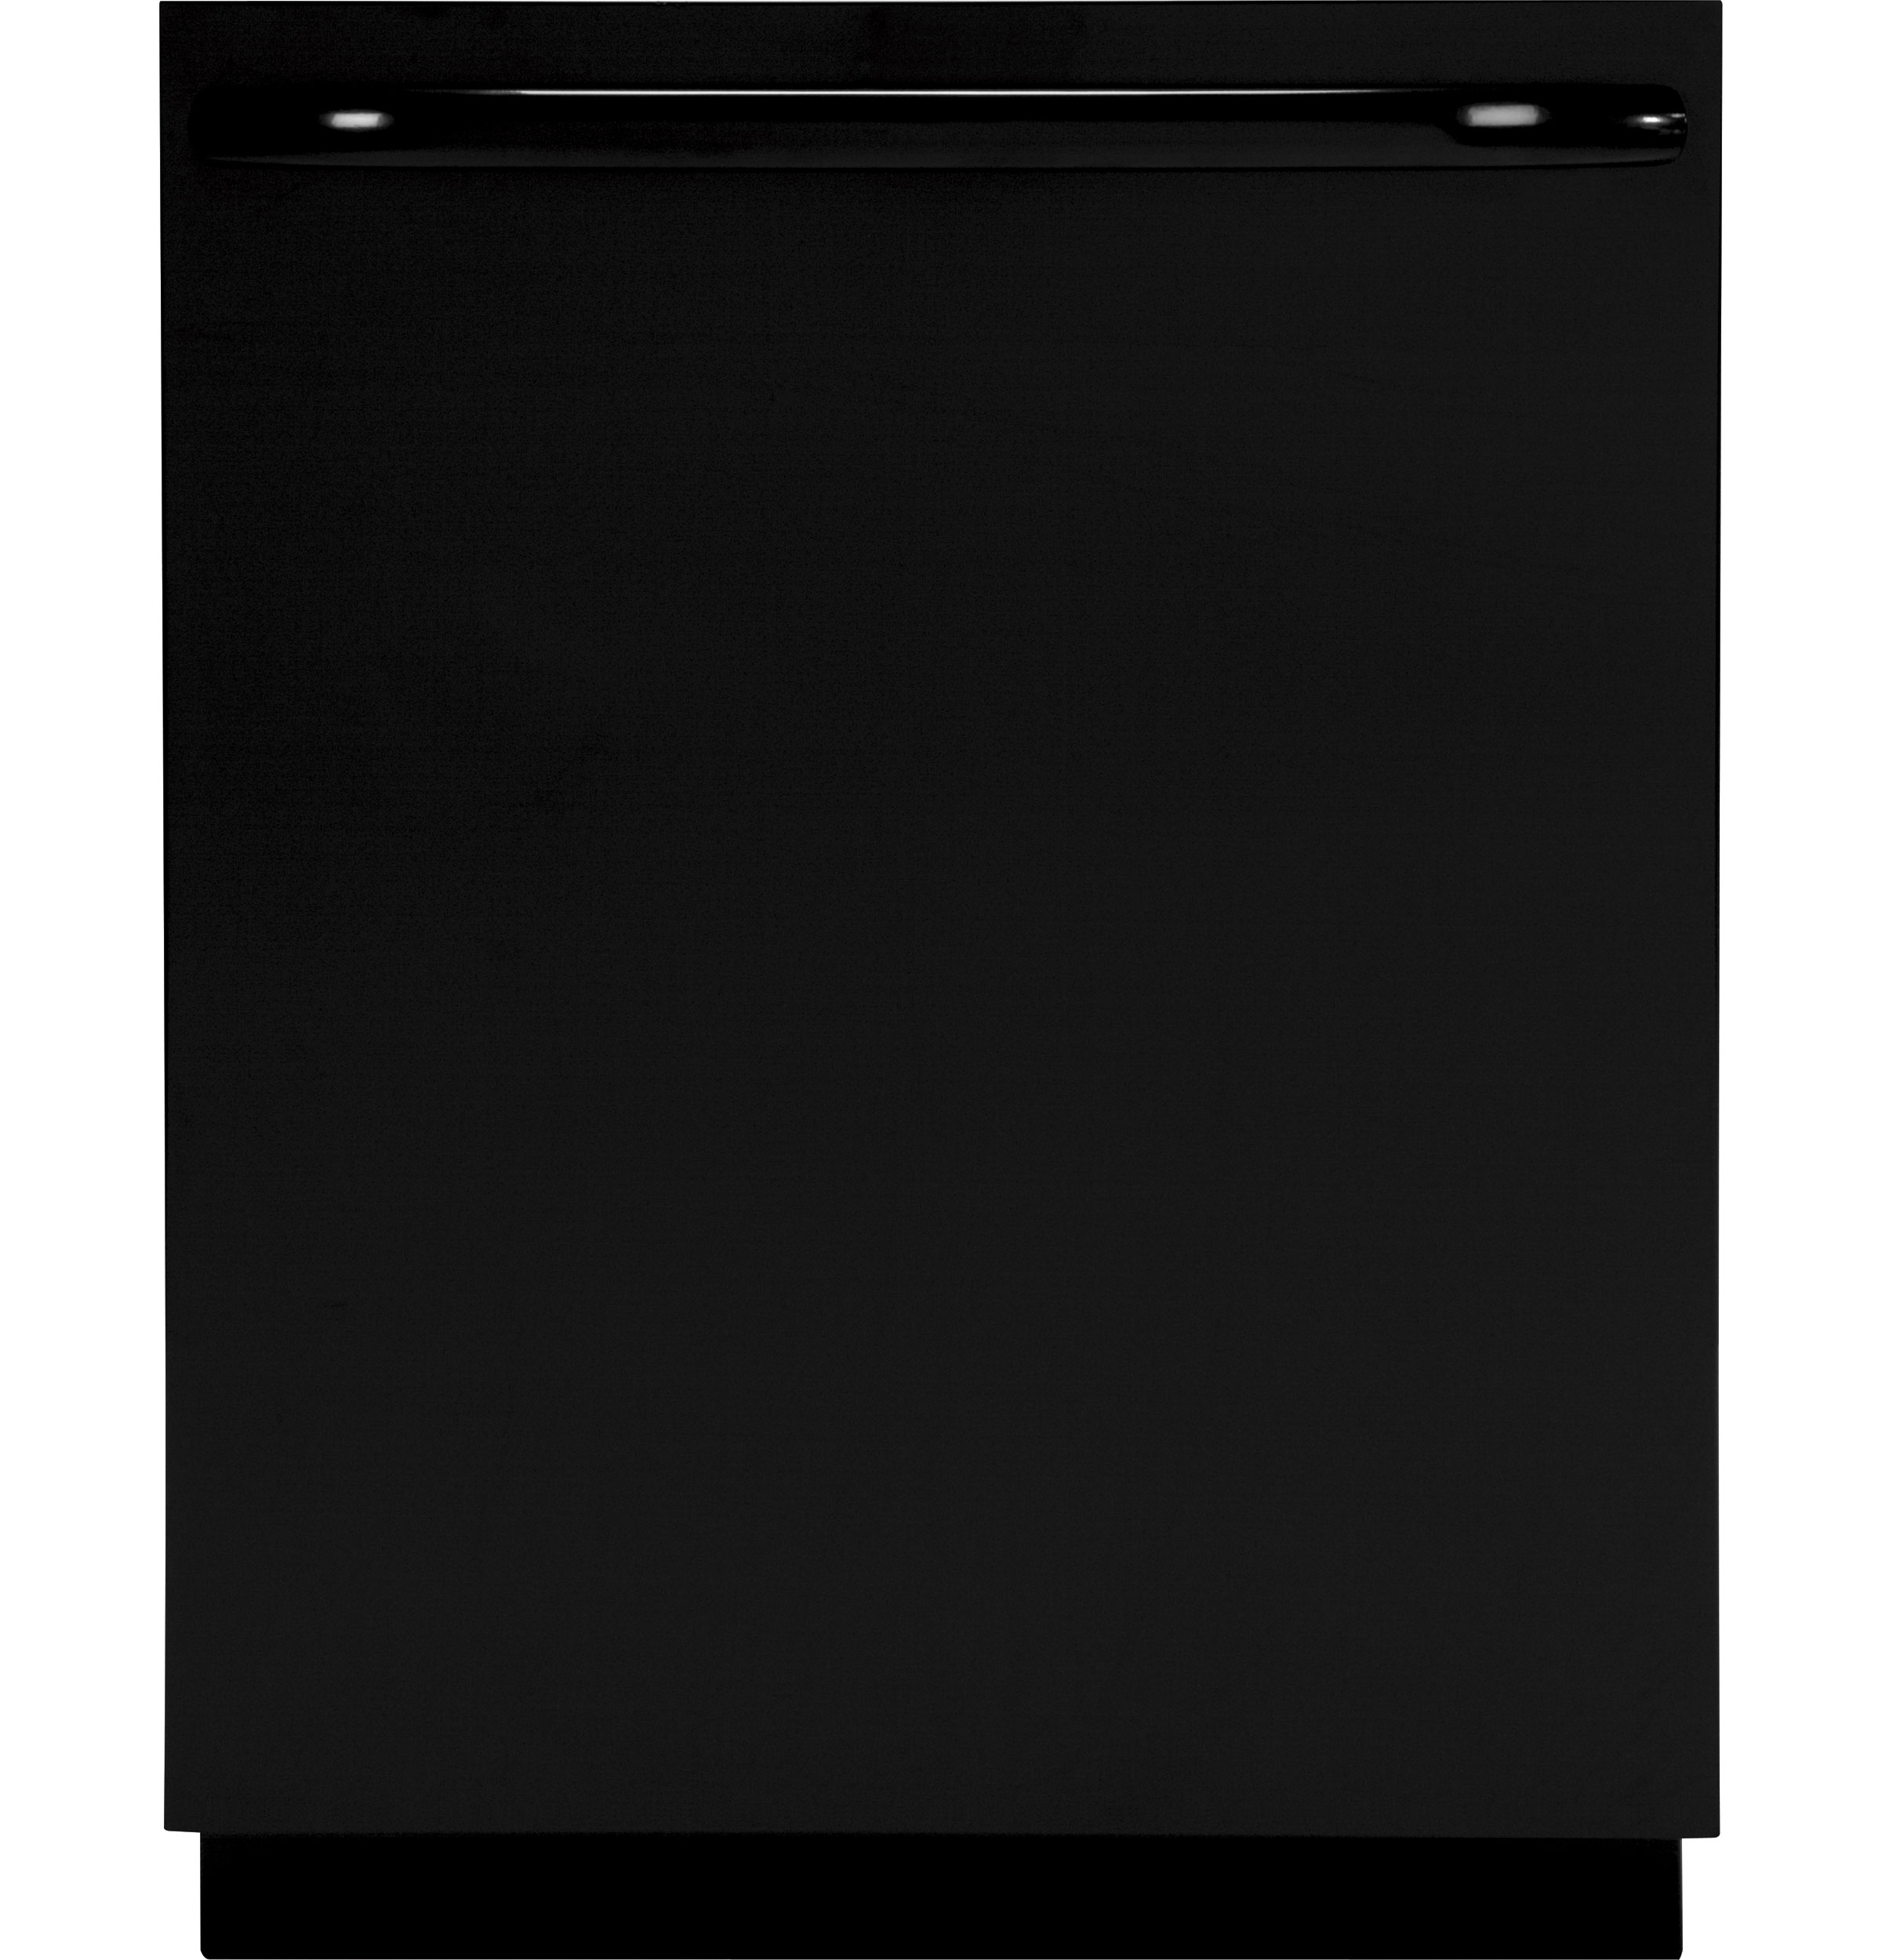 GE® Built-In Dishwasher with Hidden Controls